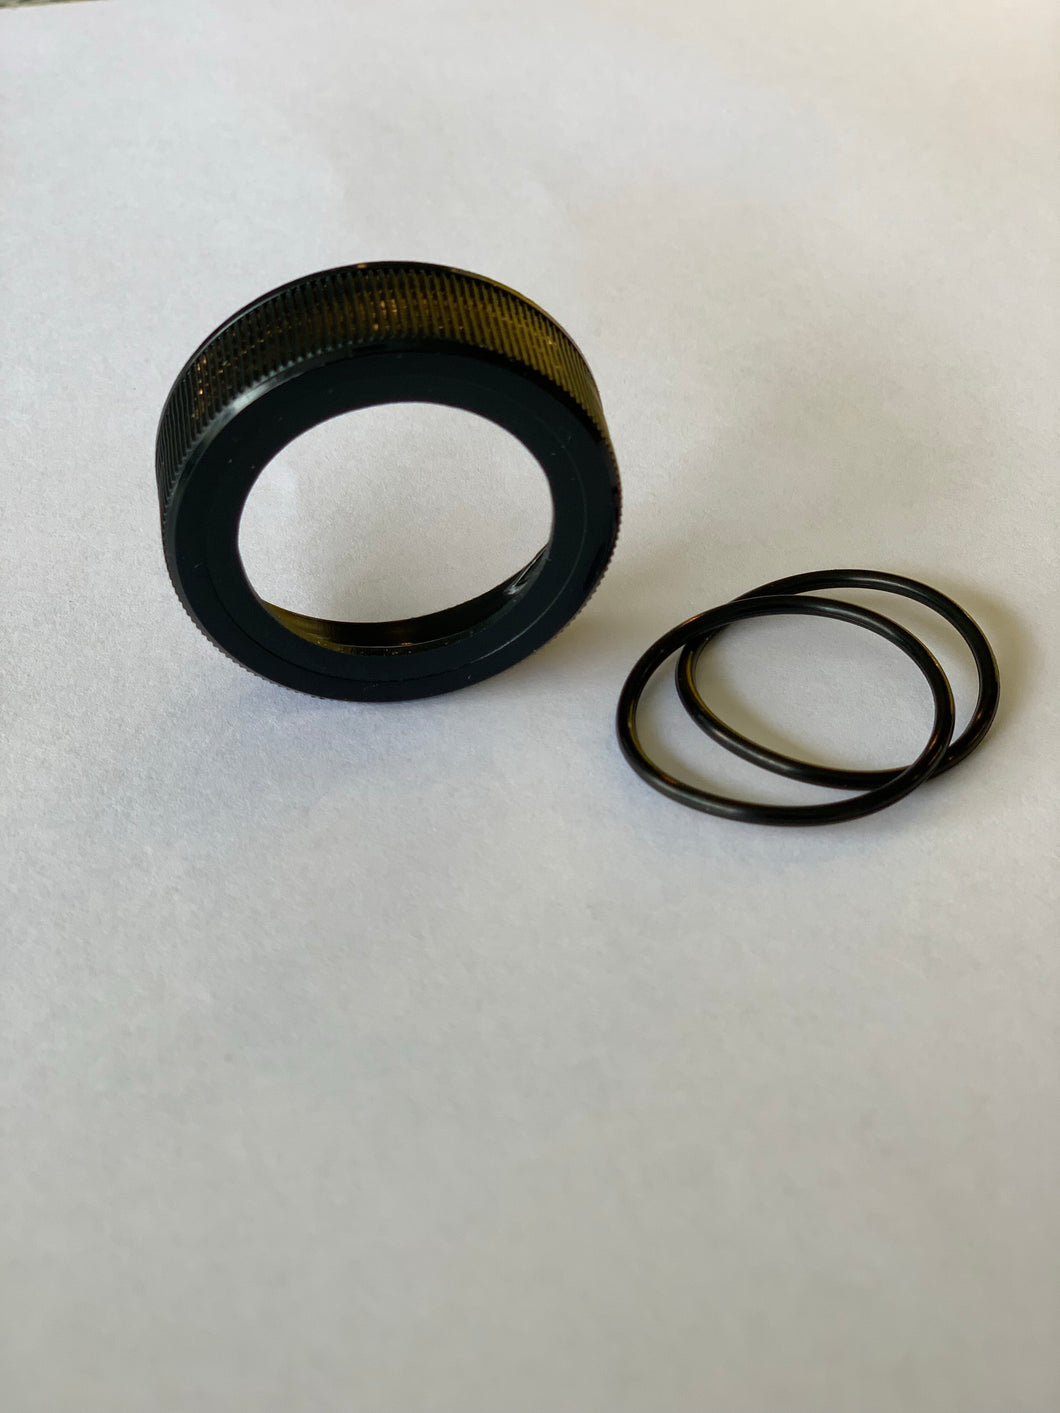 Replacement O-Rings and Threaded Retainer